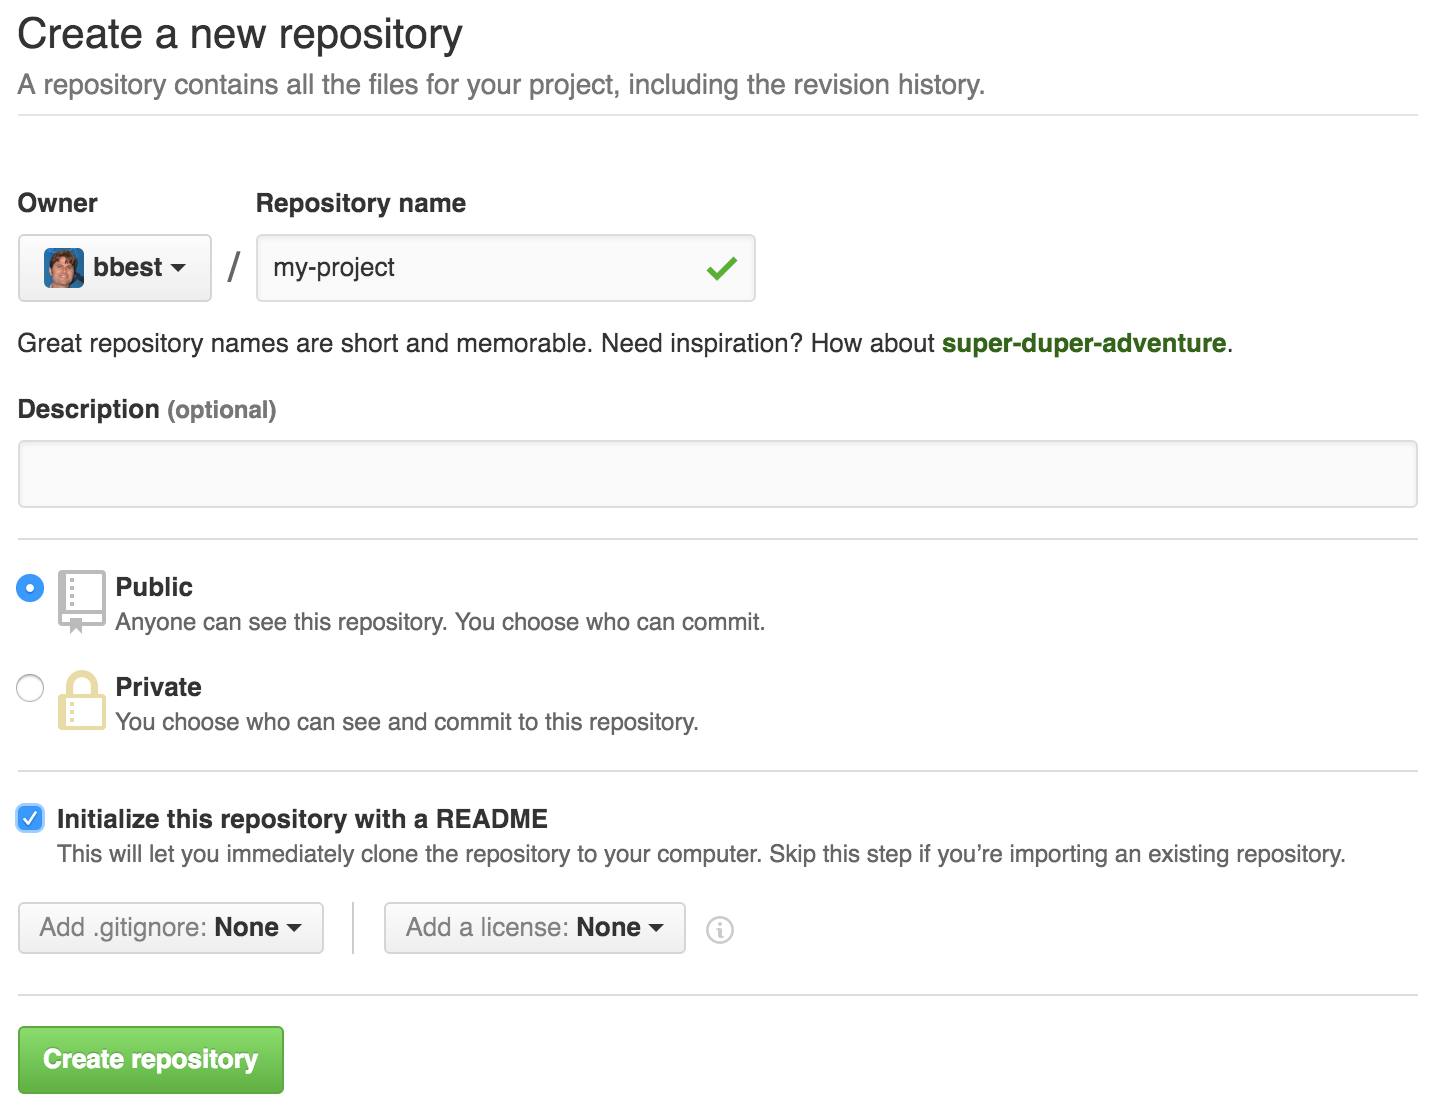 Reproducible, collaborative workflow with Github and R Markdown